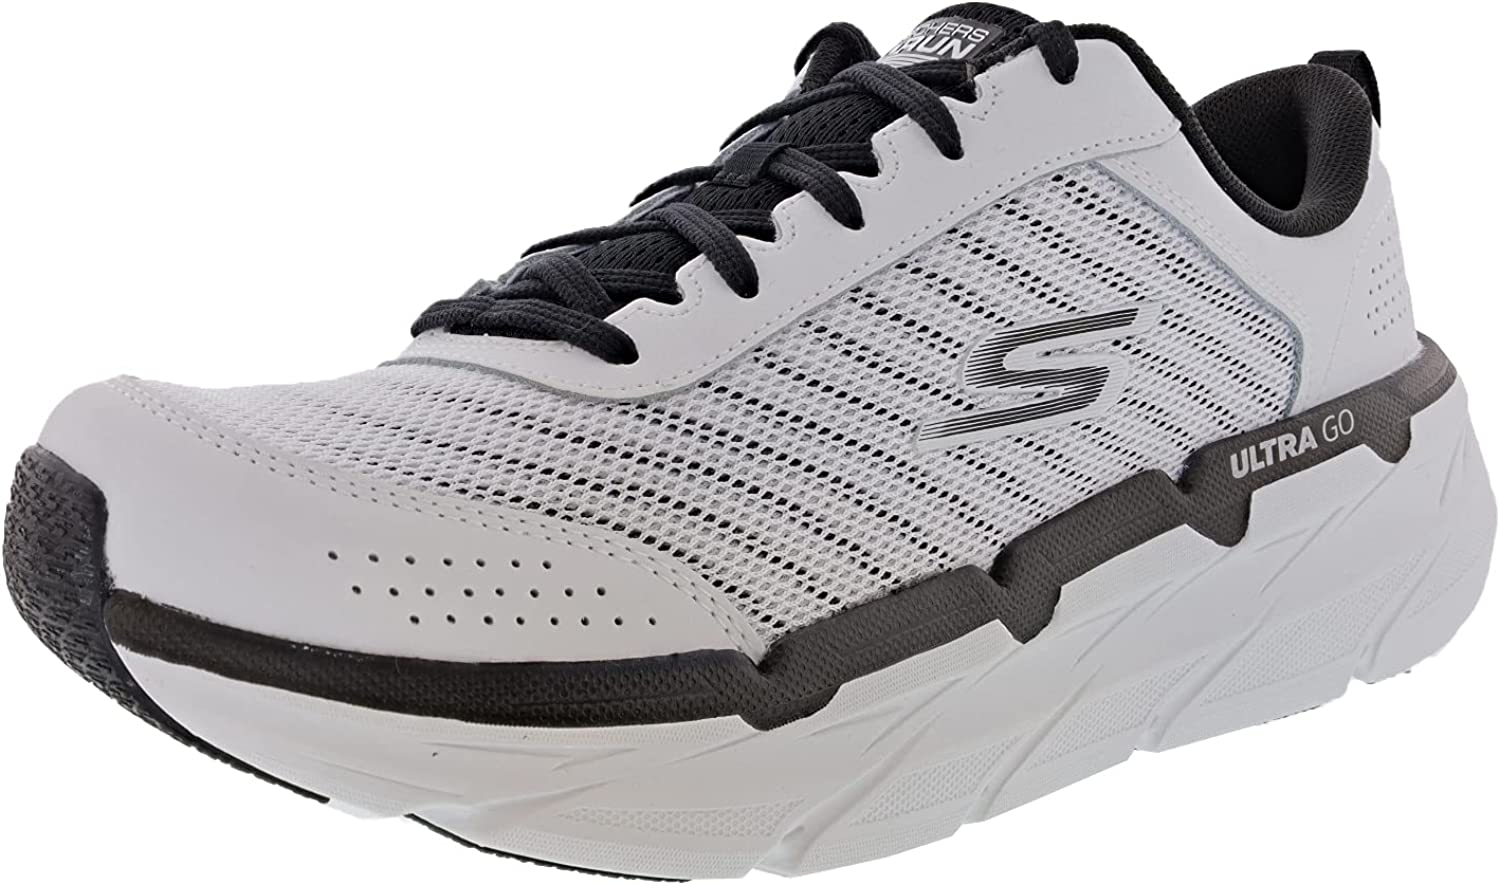 Skechers Our Popular shop is the lowest price challenge shop OFFers the best service Women's Max Cushioning Premier S Running Moves Graceful